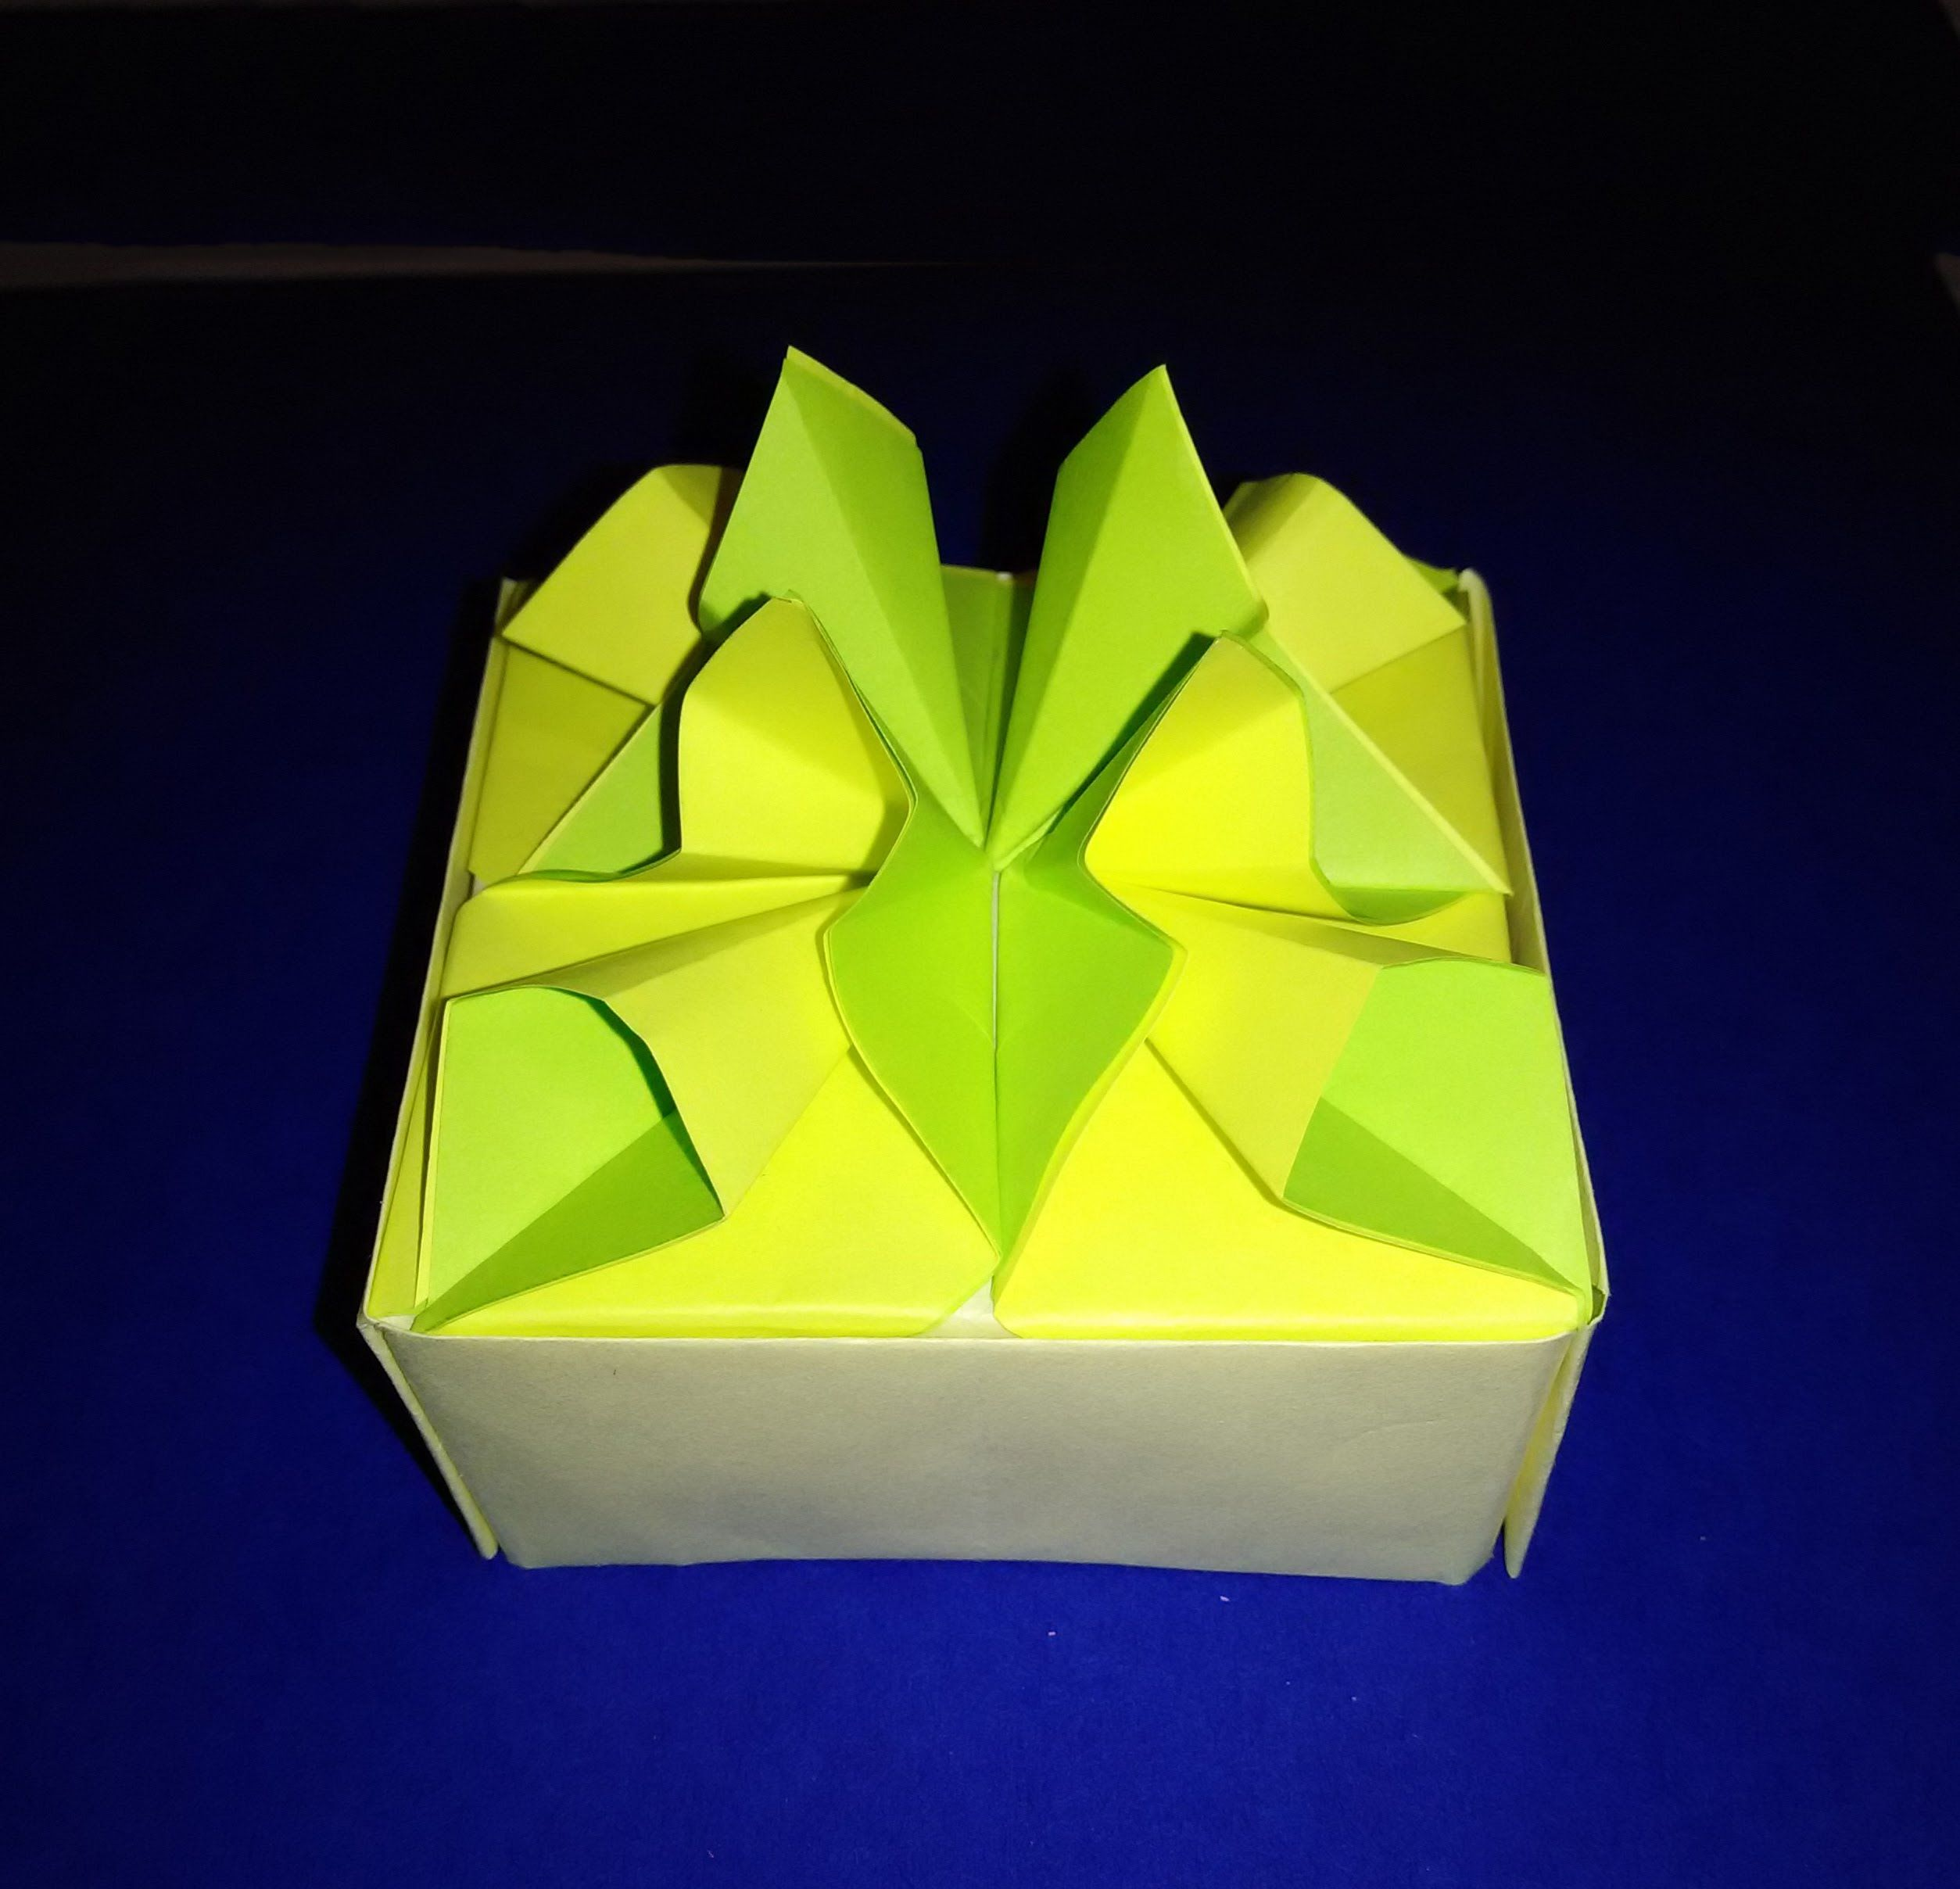 Origami flower gift box easy and awesome origami box ideas for origami flower gift box easy and awesome origami box ideas for easter negle Image collections